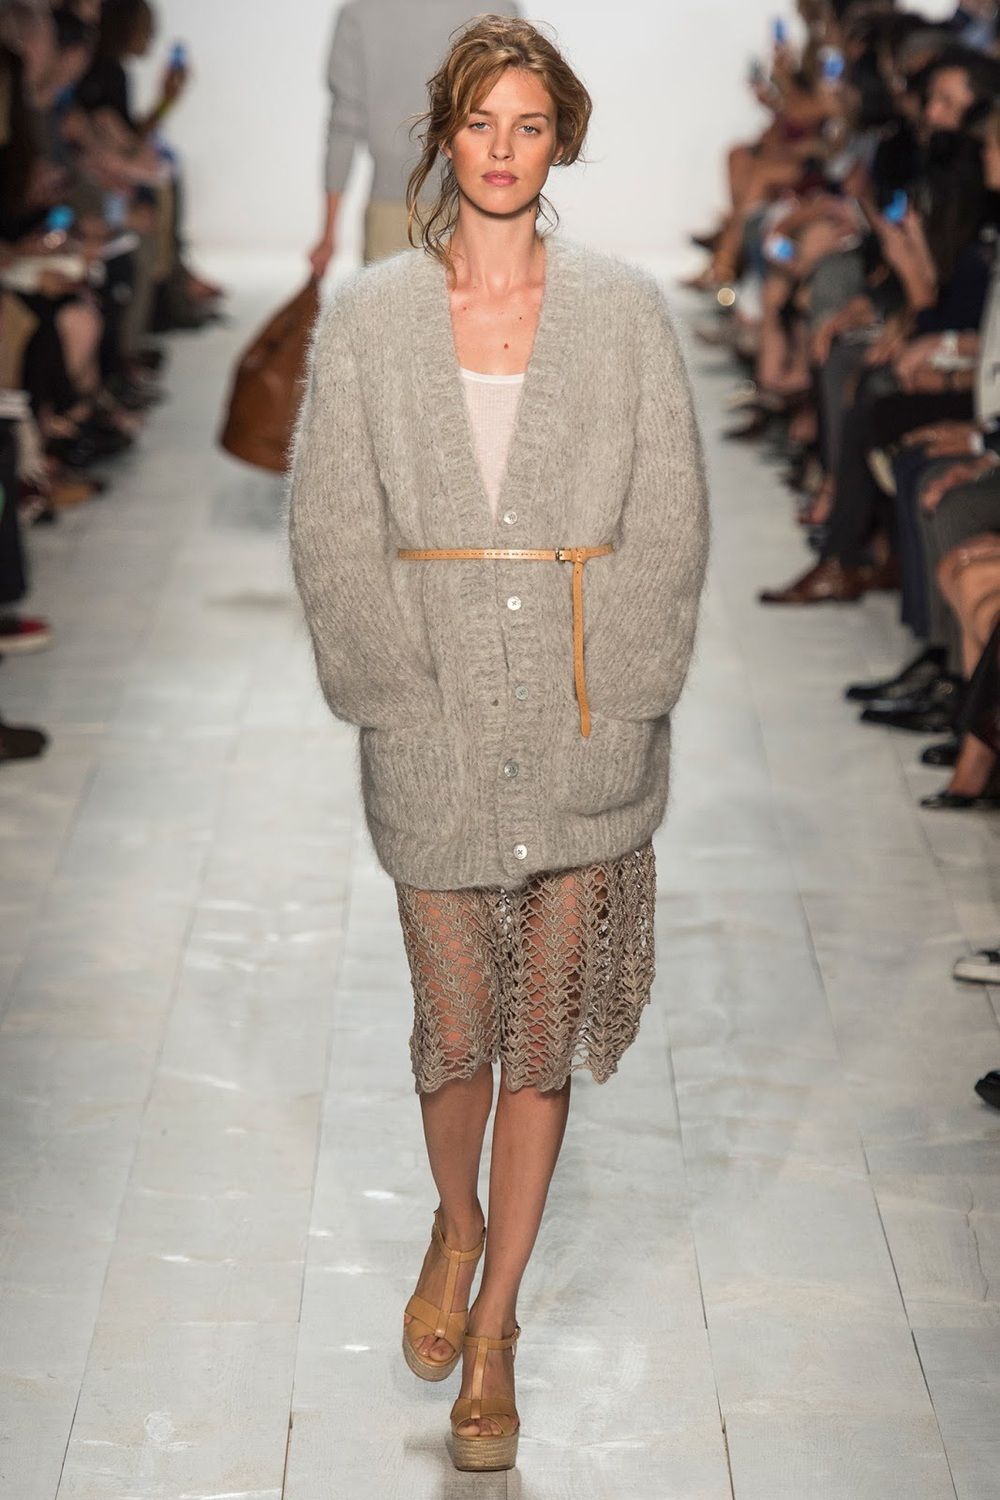 Michael-Kors-SS-2014-New-York-Fashion-Week-10.jpg